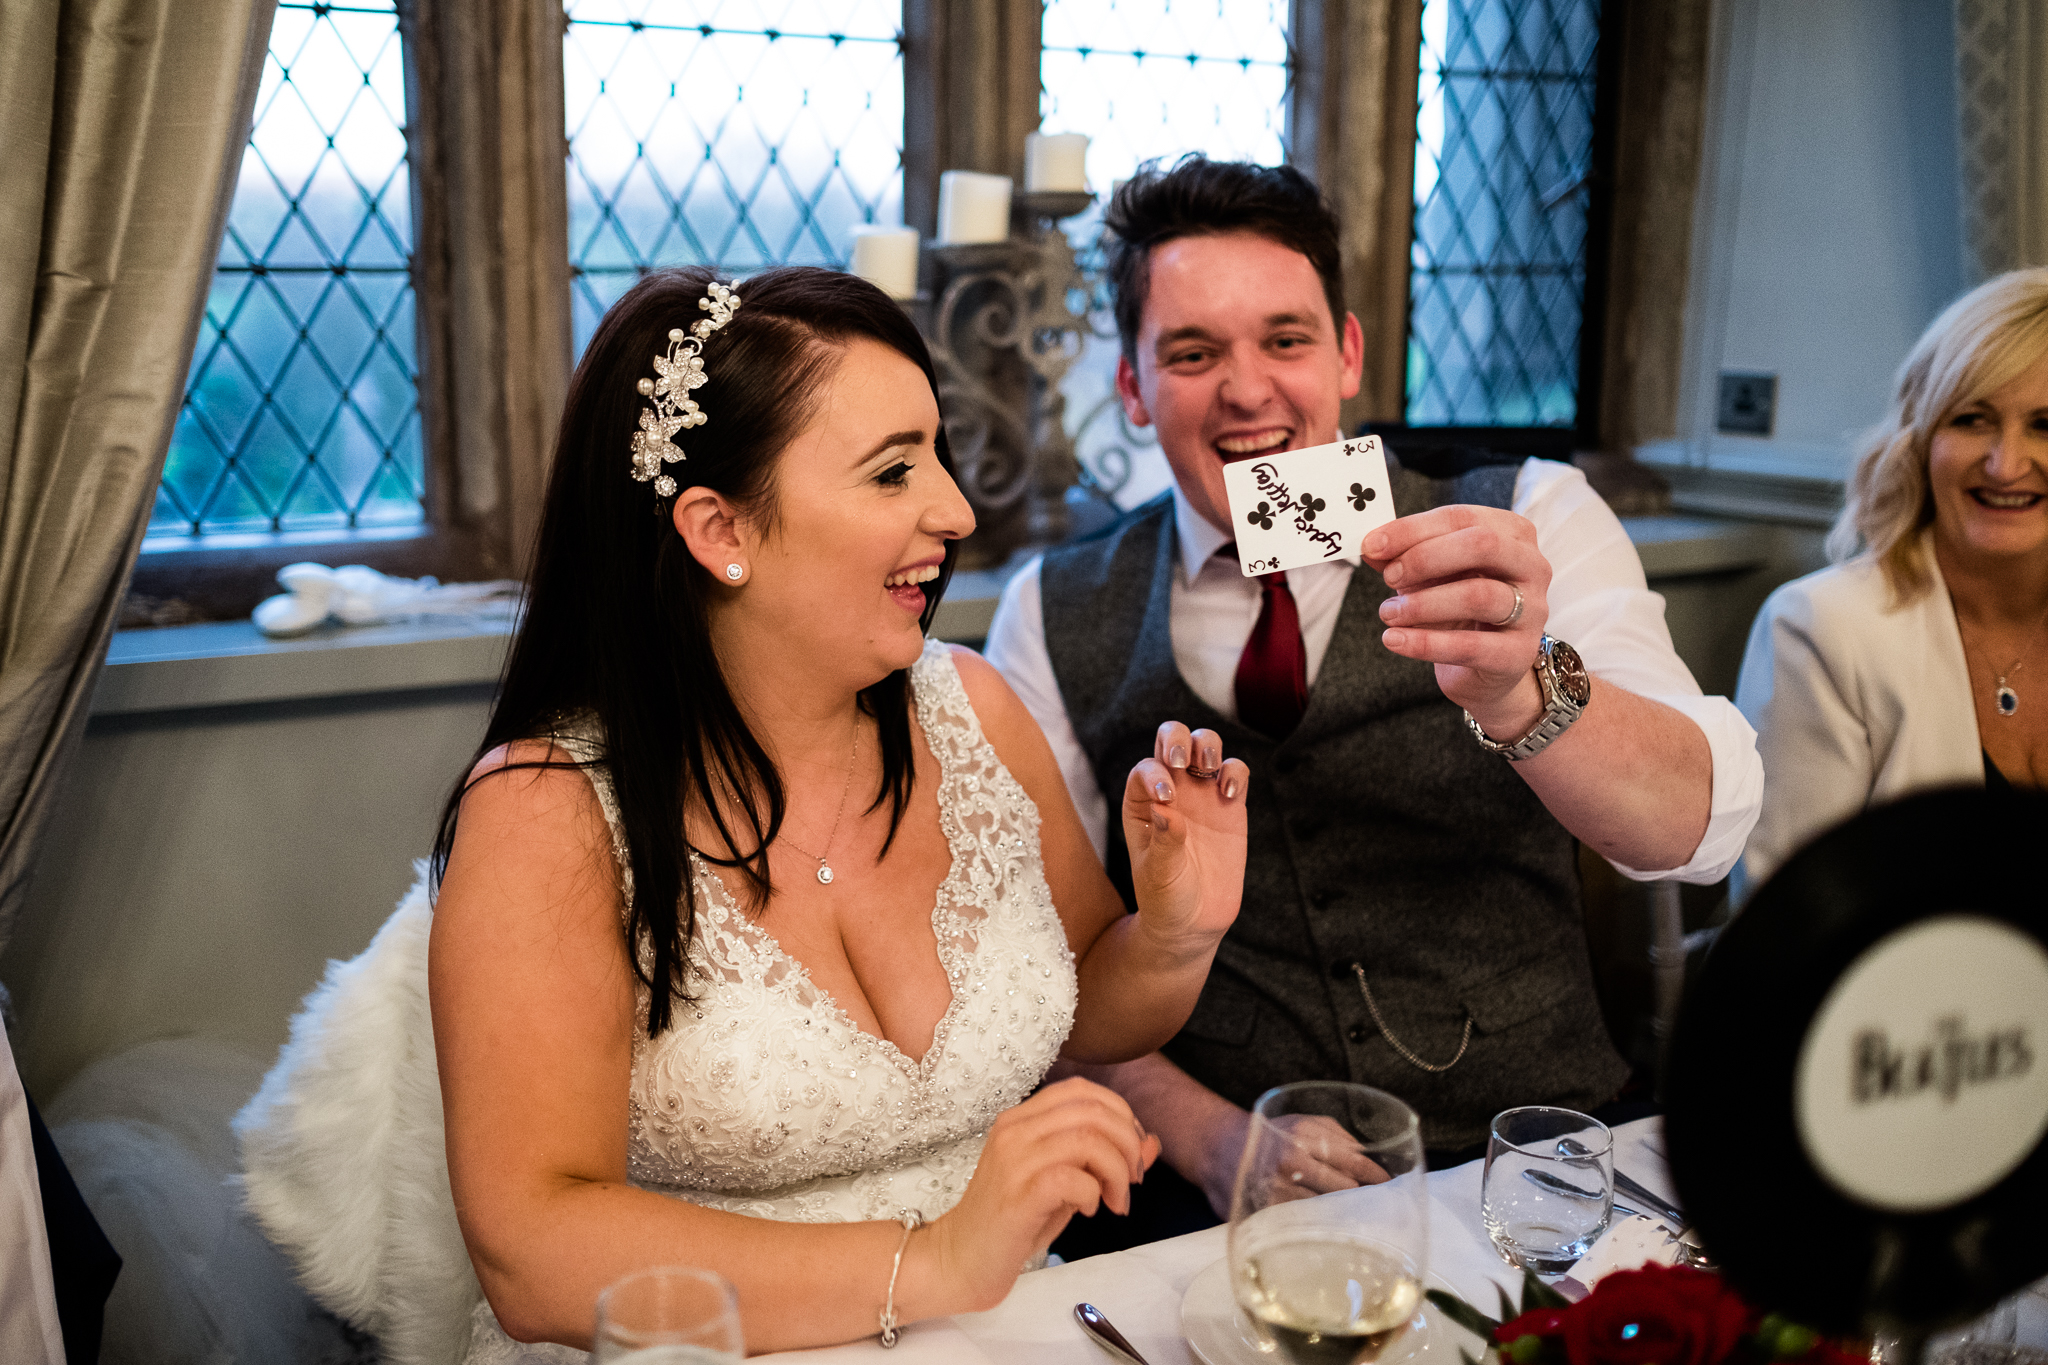 Winter Wedding Christmas Wedding Photography Stafford, Staffordshire Saint Chad Weston Hall Documentary Photographer - Jenny Harper-43.jpg